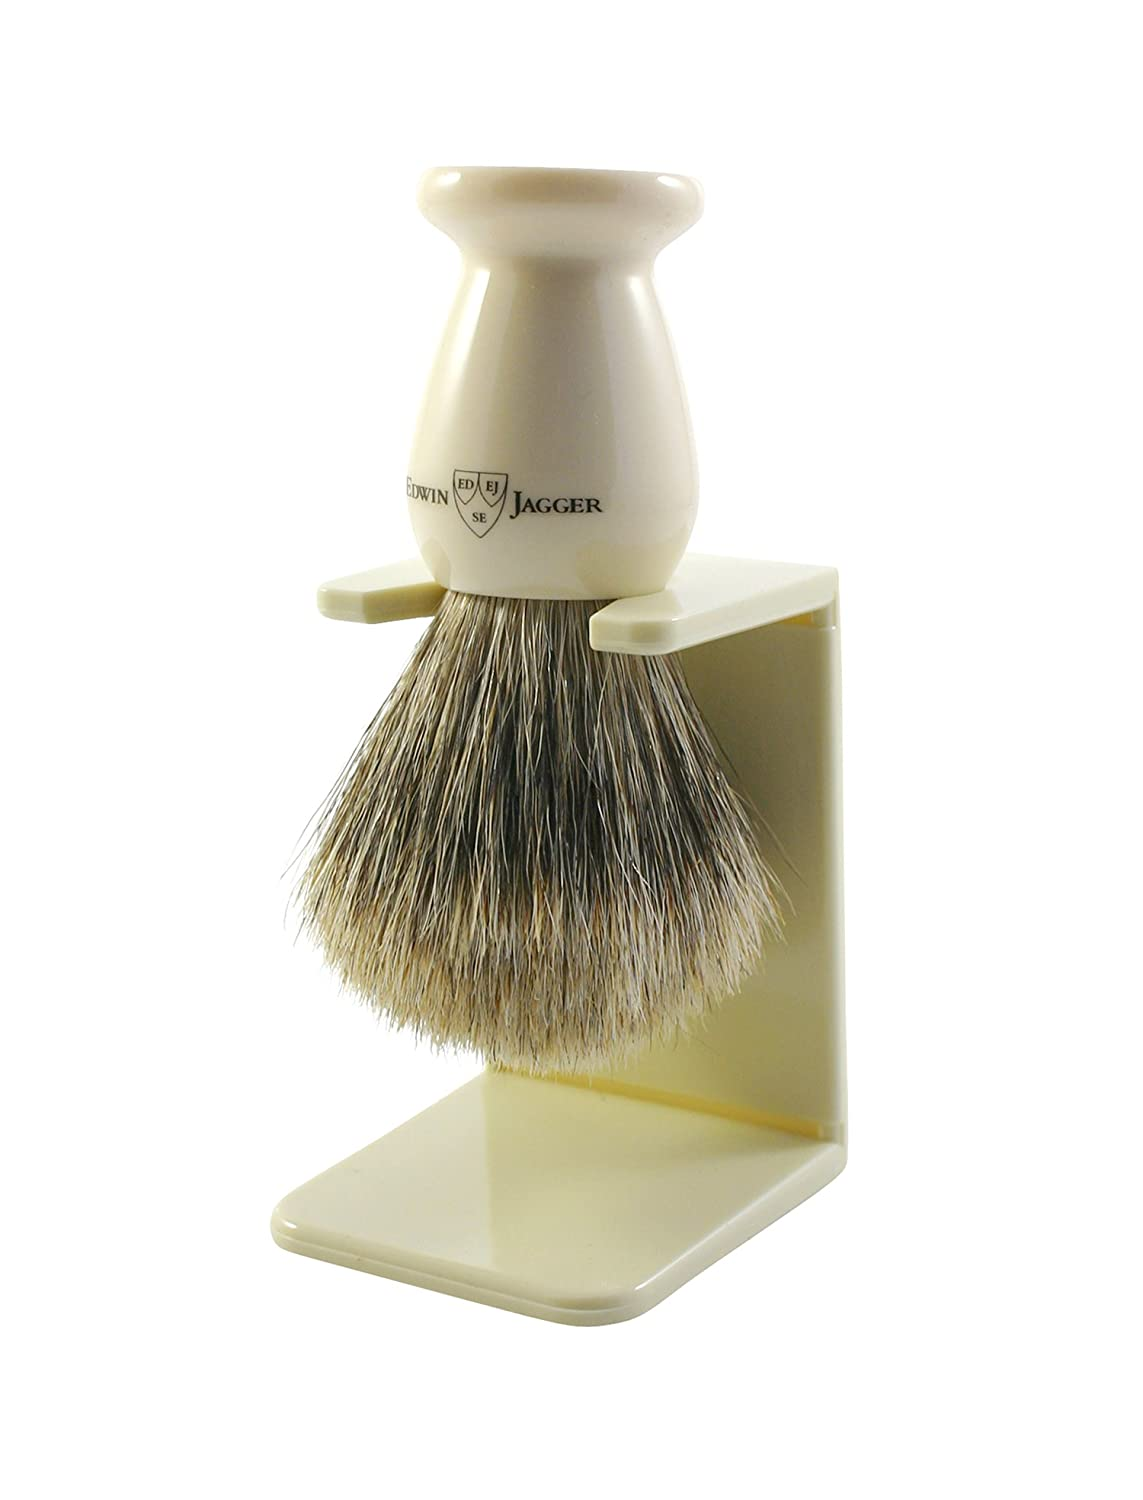 Edwin Jagger 9ej946sds Handmade Imitation Ebony Best Badger Shaving Brush with Drip Stand, Black, Small 9EJ946SDSAMZ